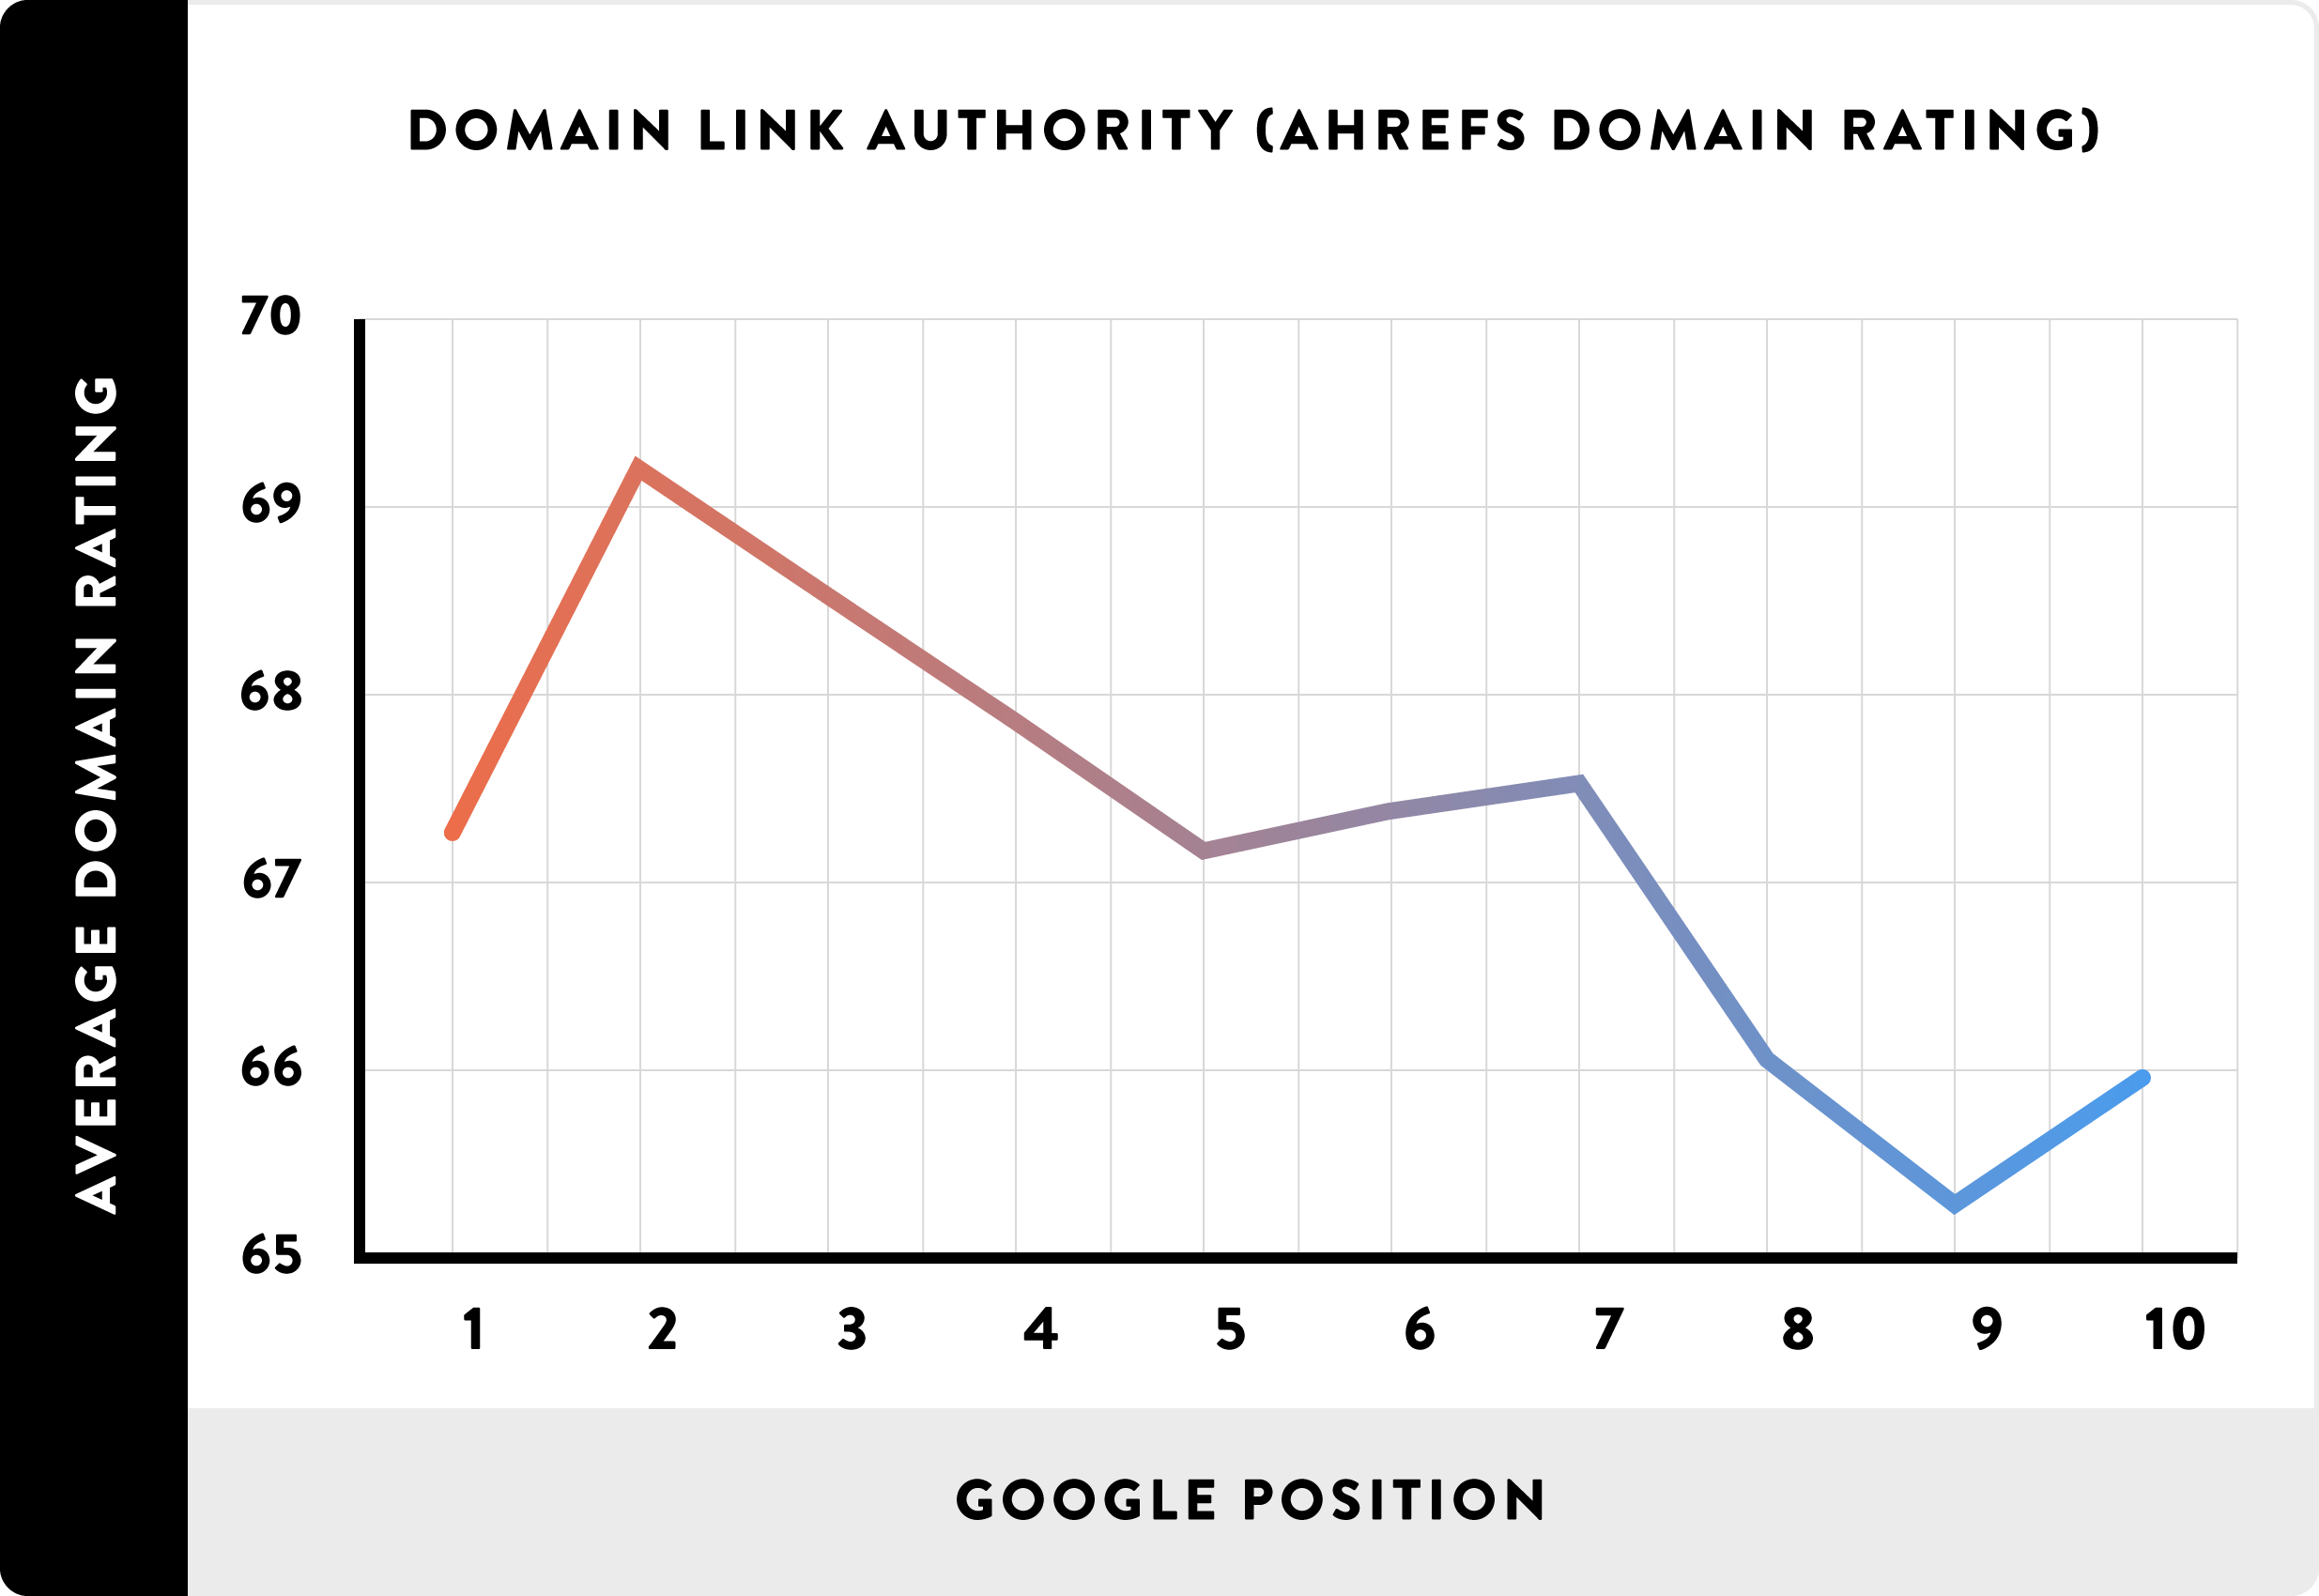 Domain Link Authority Ahrefs Domain Rating